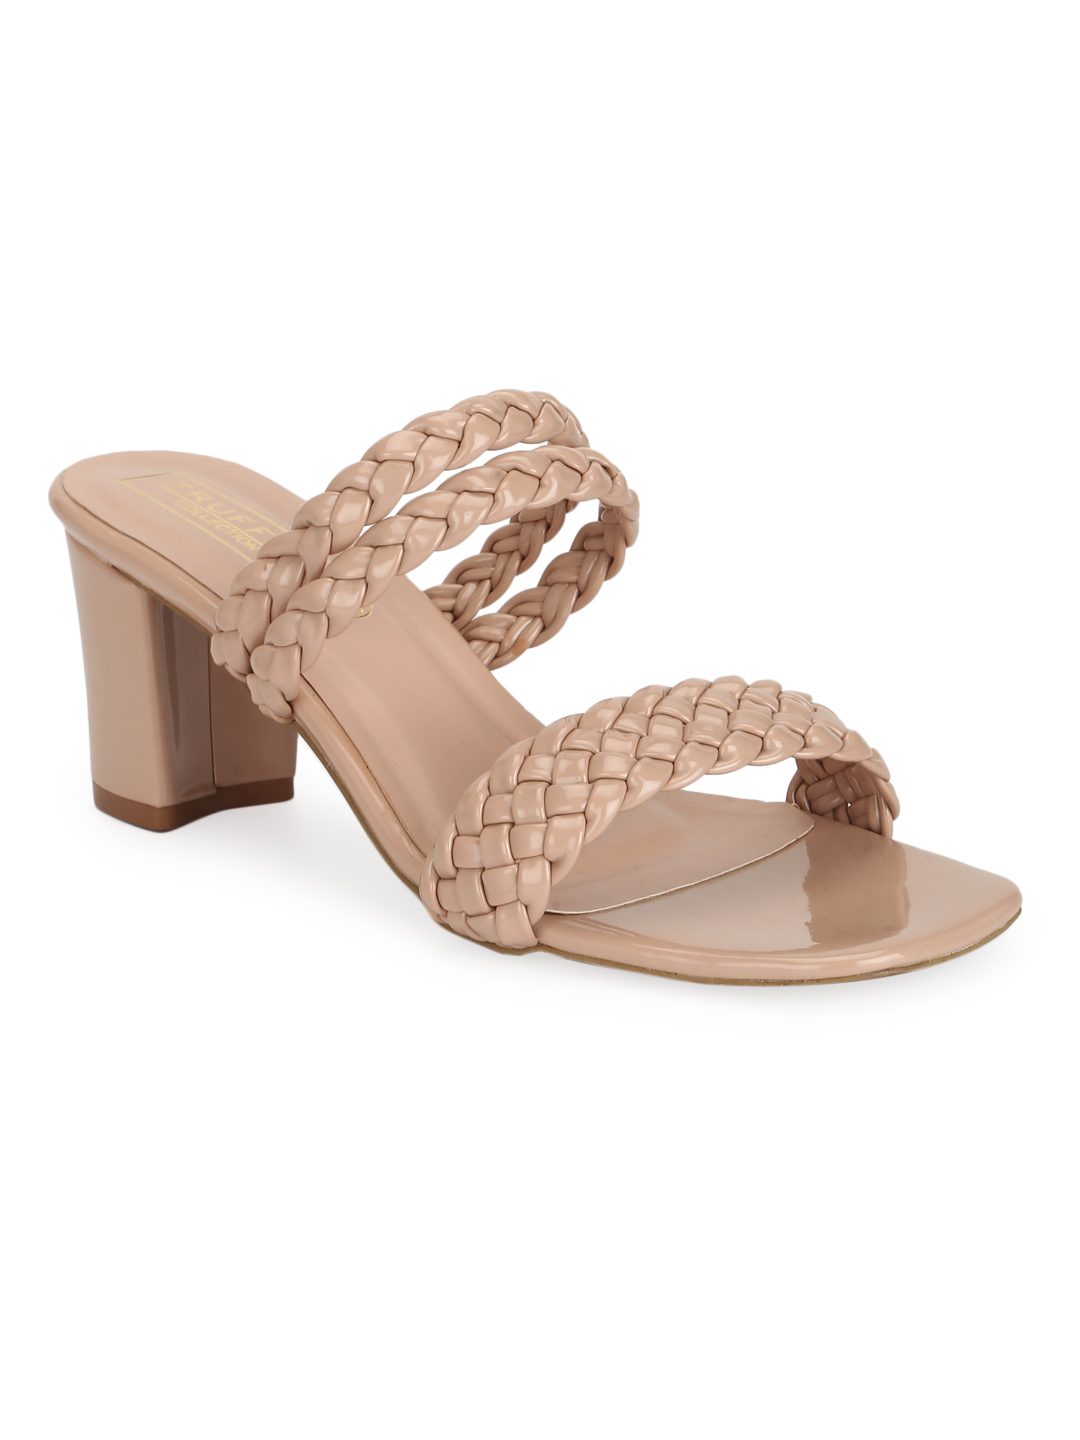 Truffle Collection   Nude Patent Braided Block Heel Sandals